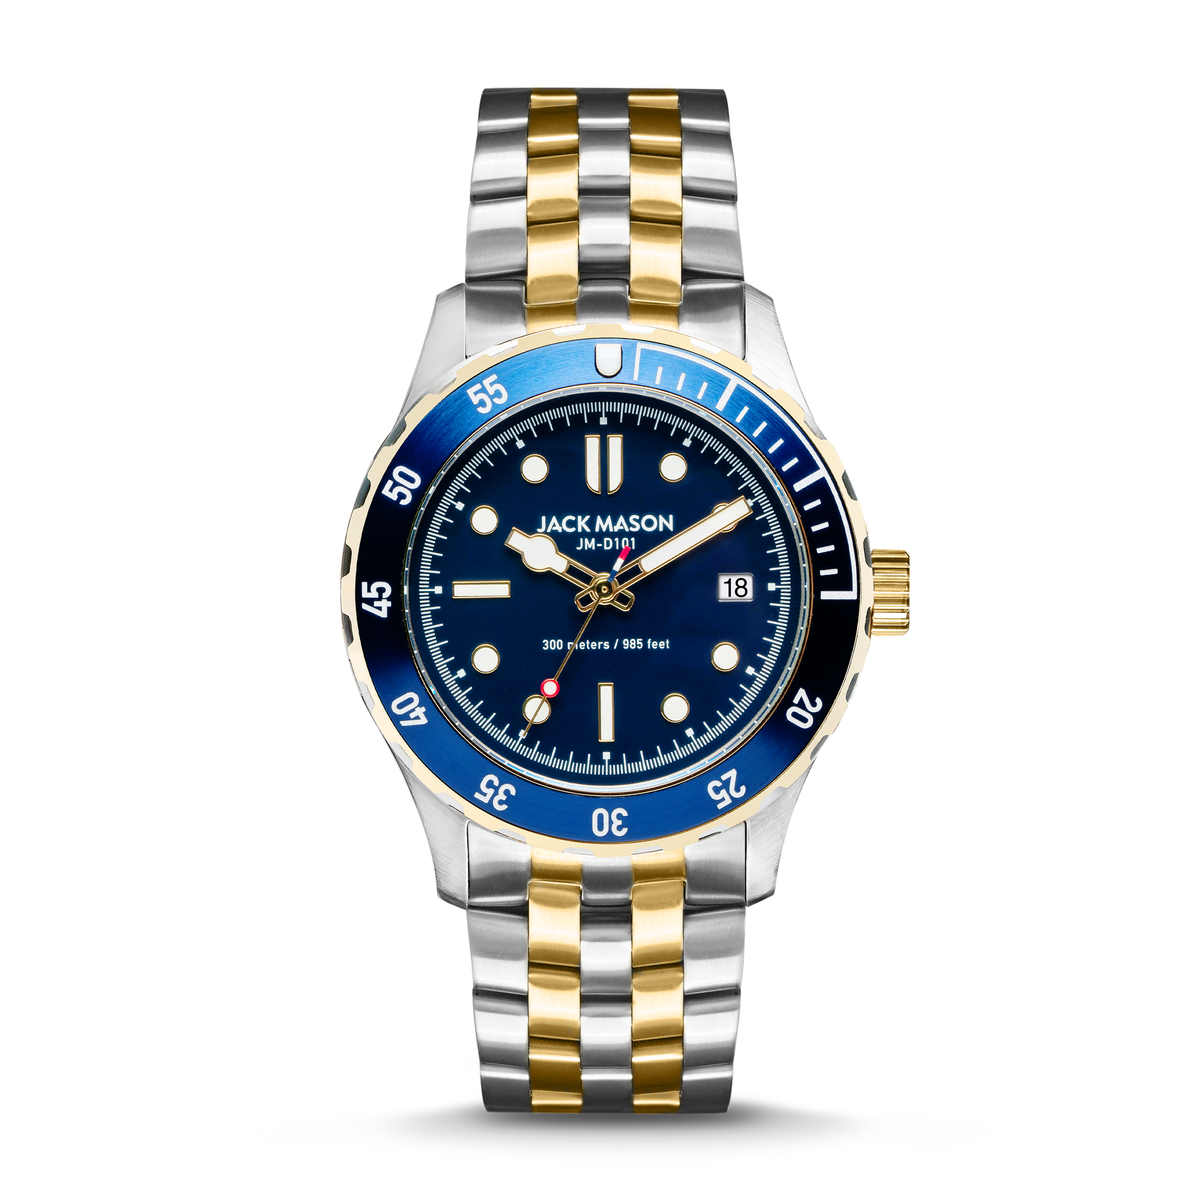 Blue men's diving watch by Jack Mason